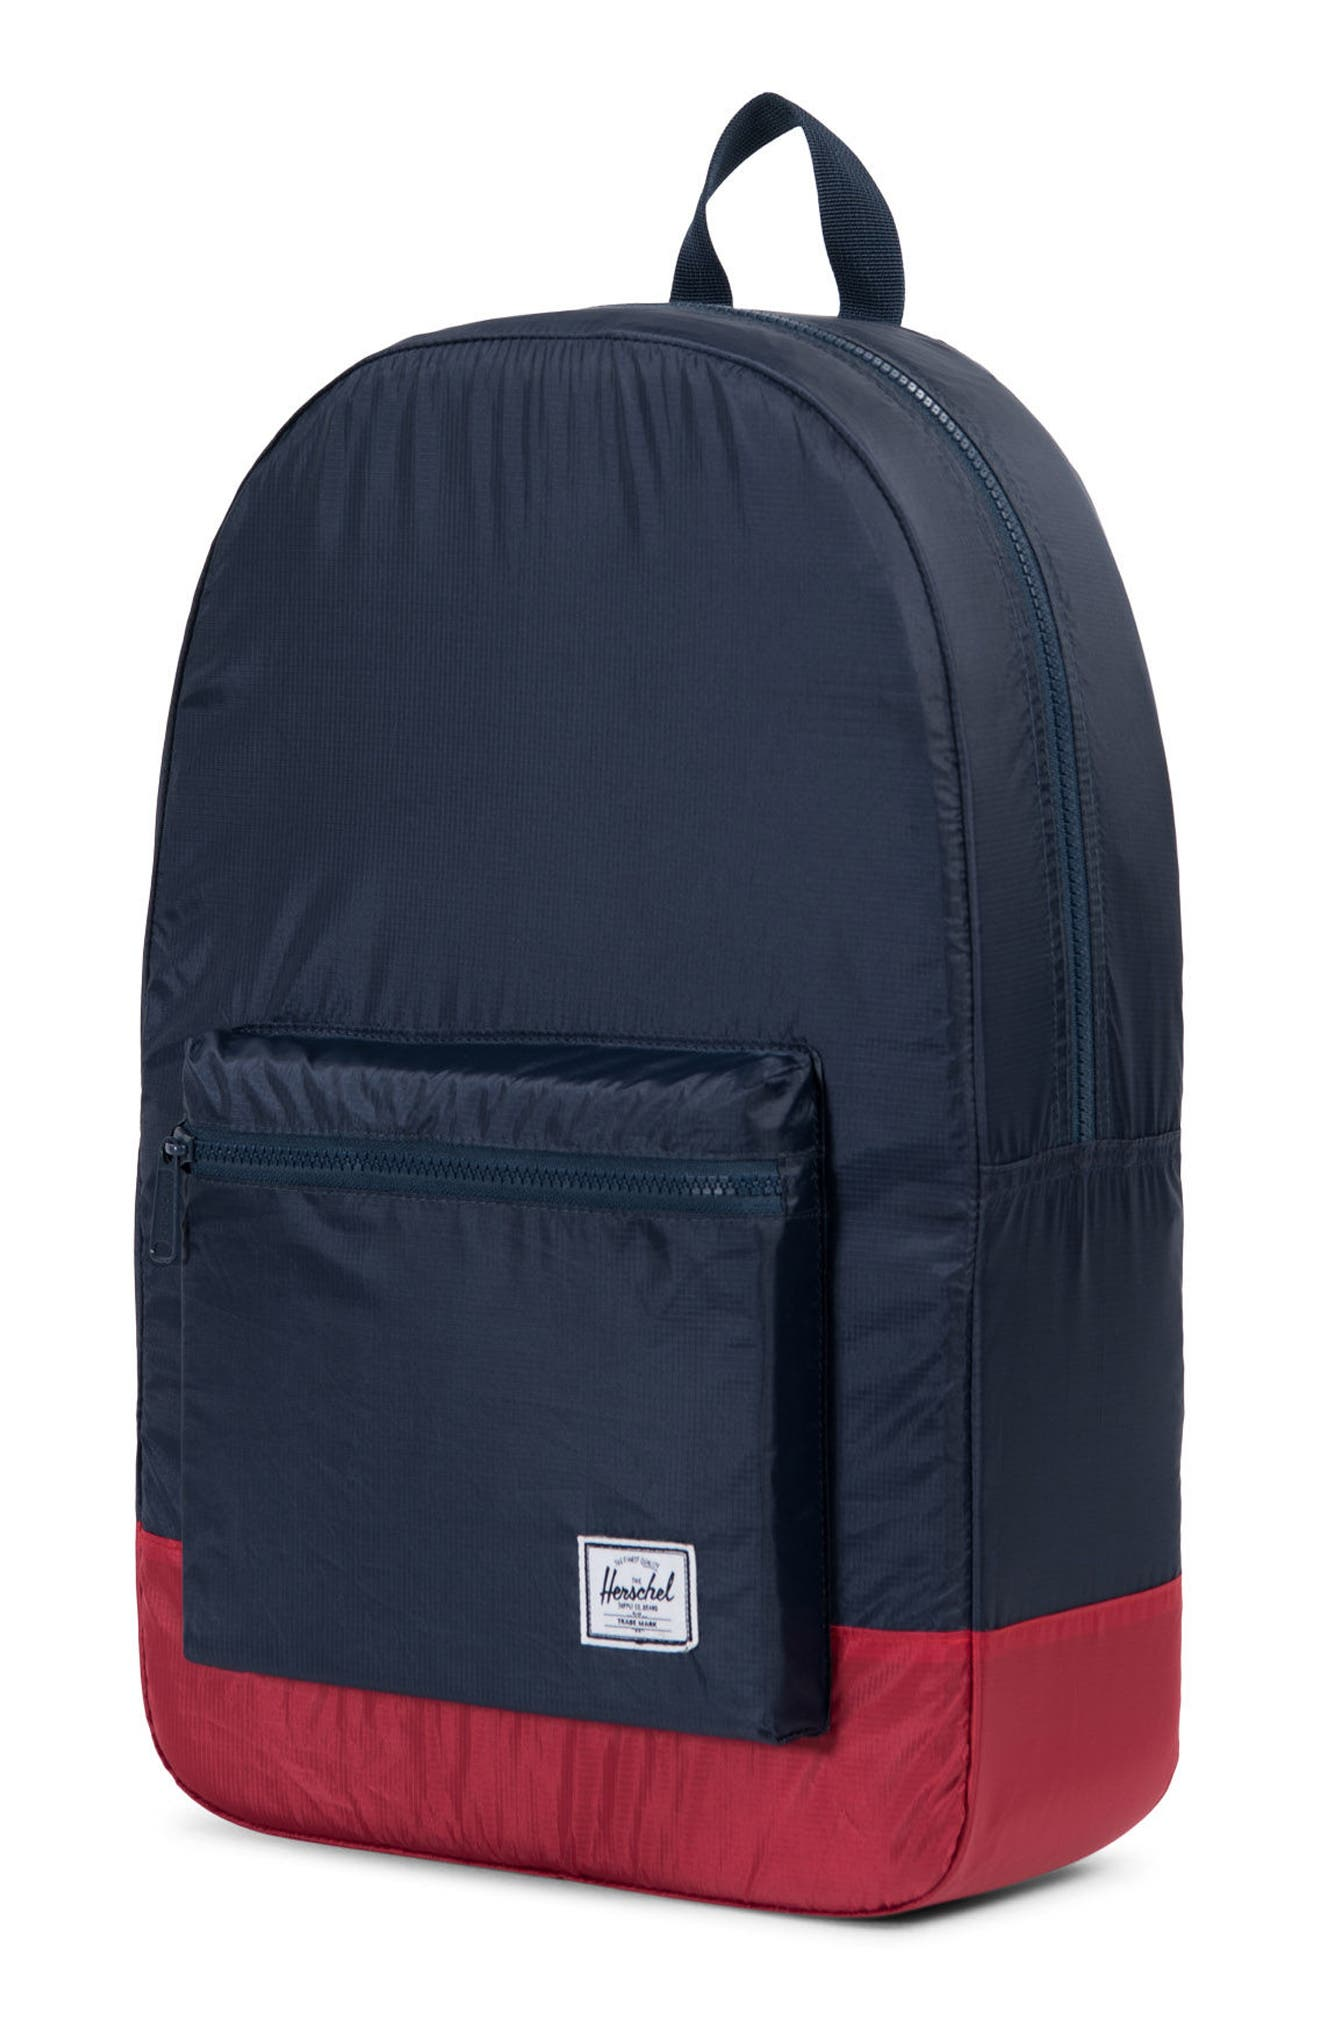 Packable Daypack,                             Alternate thumbnail 3, color,                             Navy/ Red